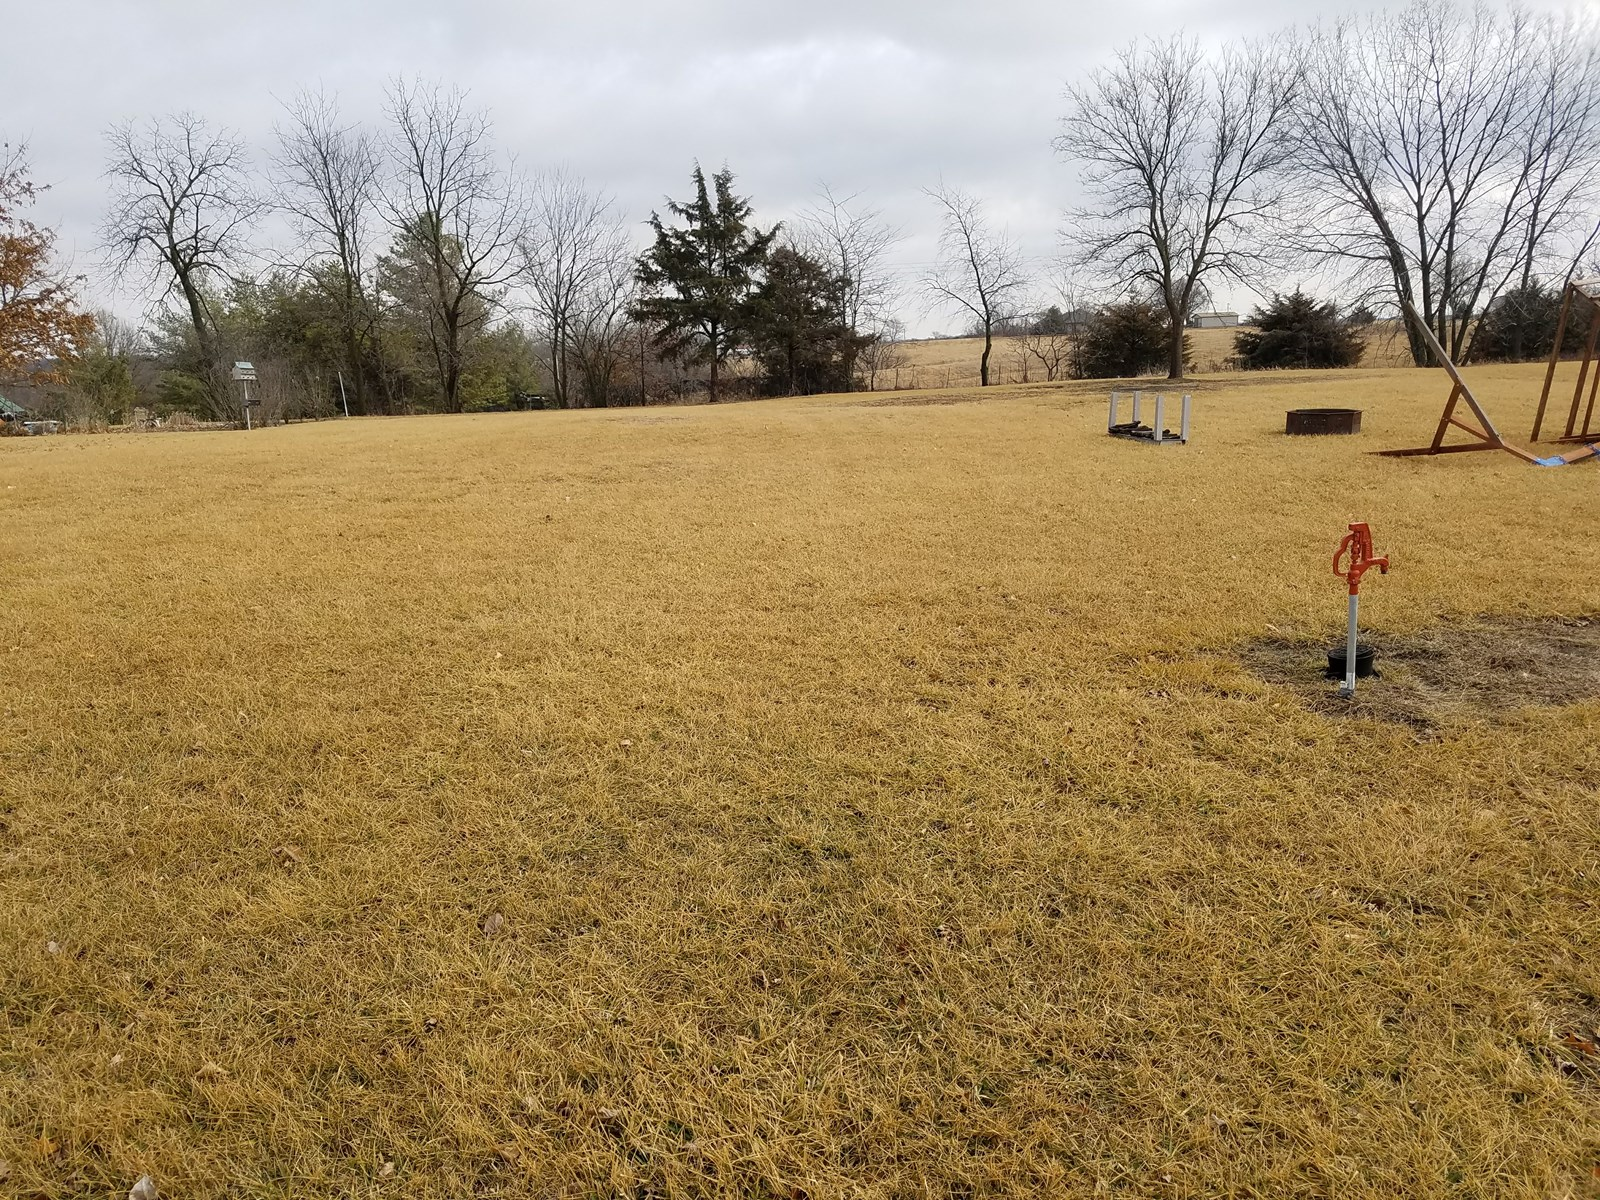 Lot for sale at Lake Thunderhead in North Missouri